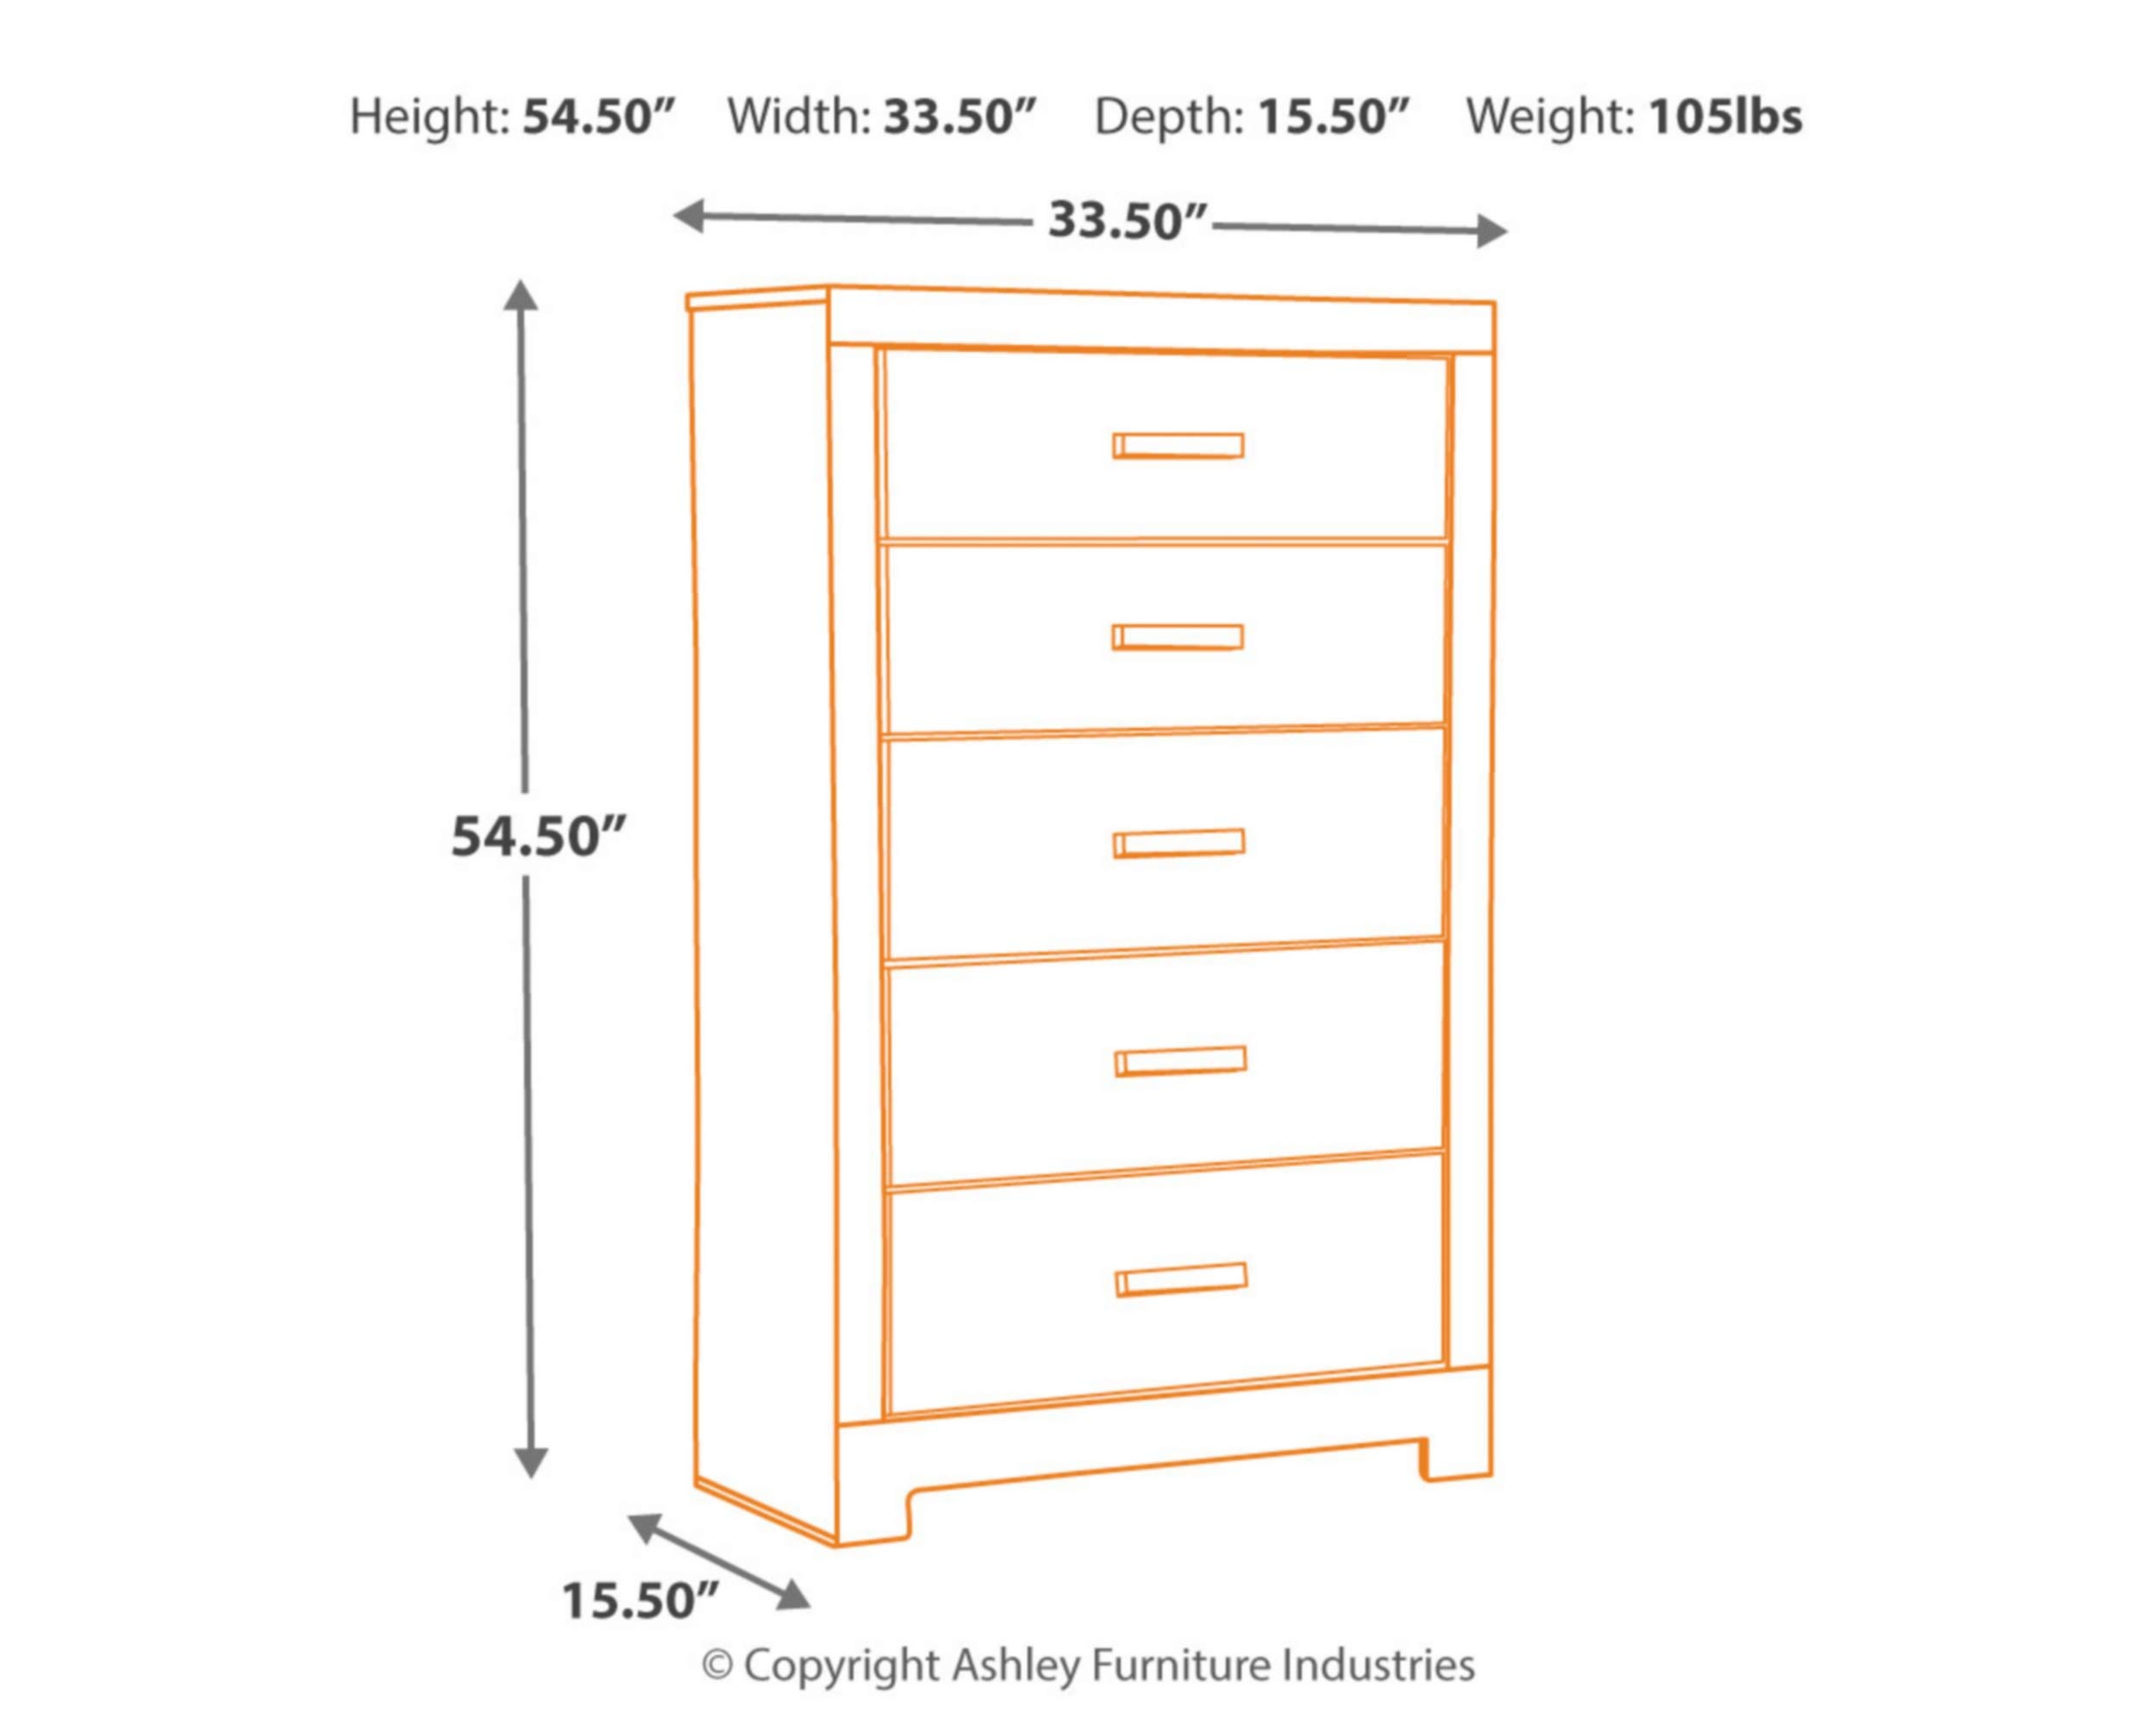 Ashley Furniture Signature Design - Harlinton Chest of Drawers - 5 Drawer Dresser - Contemporary Vintage - Warm Gray & Charcoal by Signature Design by Ashley (Image #4)